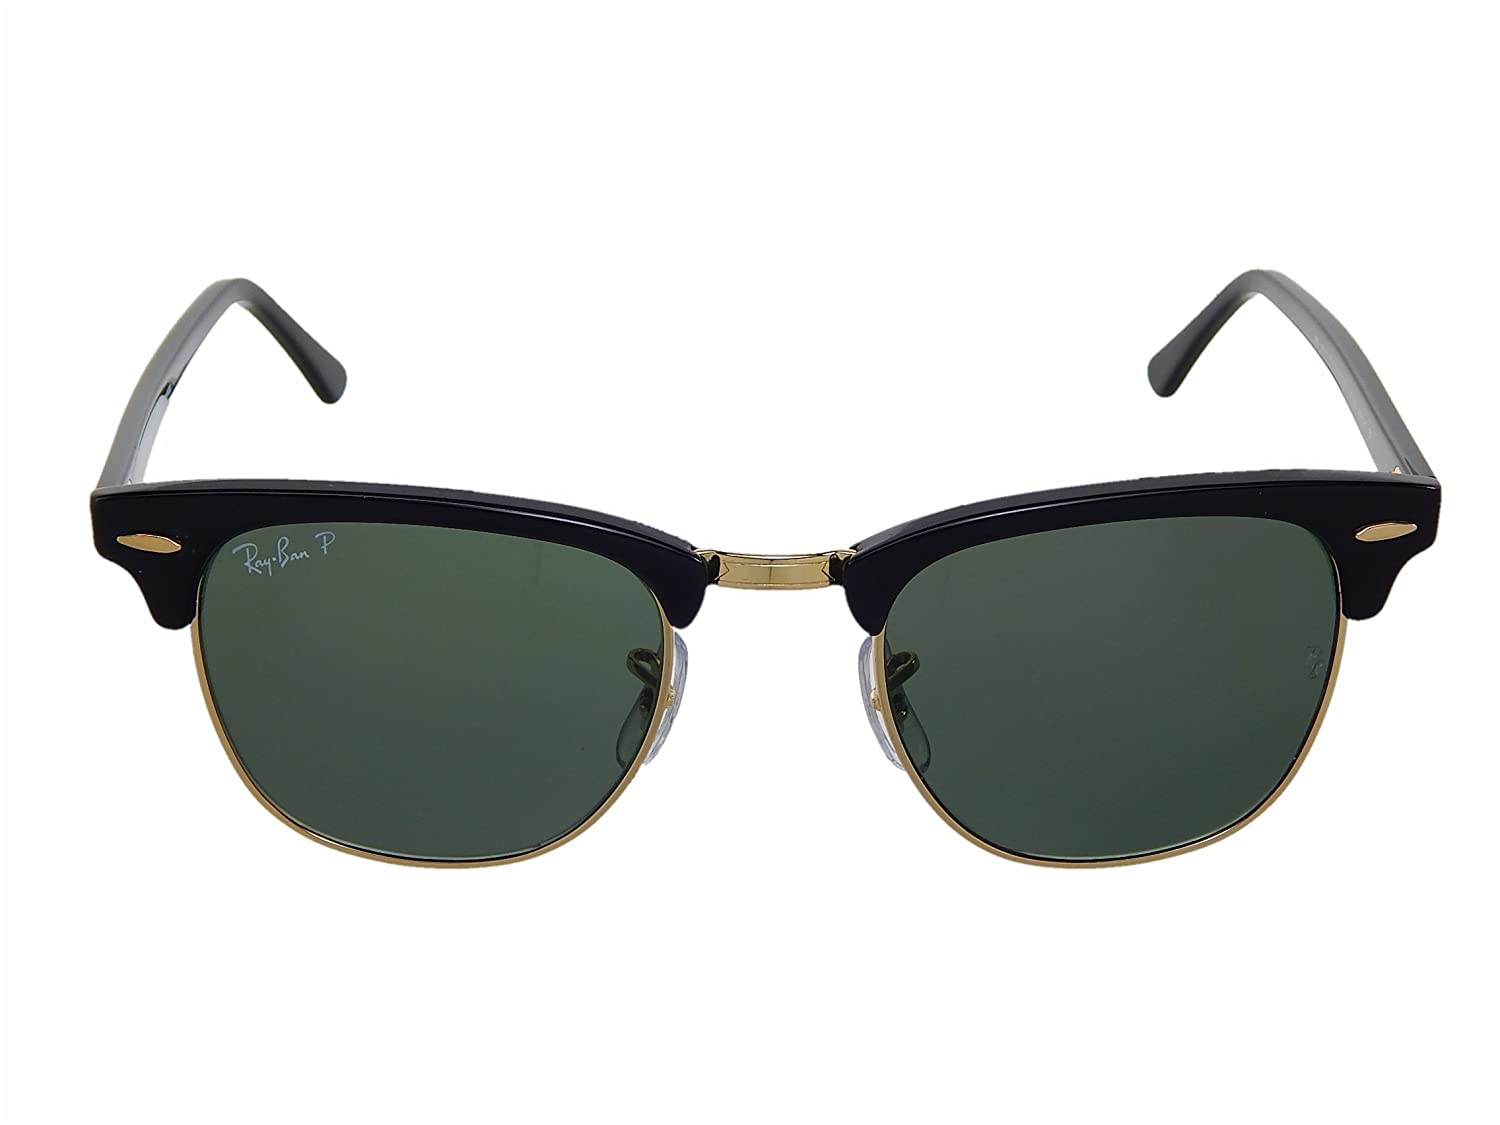 7a302611ca Amazon.com  New Ray Ban Clubmaster RB3016 901 58 Black Crystal Green  Polarized 49mm Sunglasses  Shoes